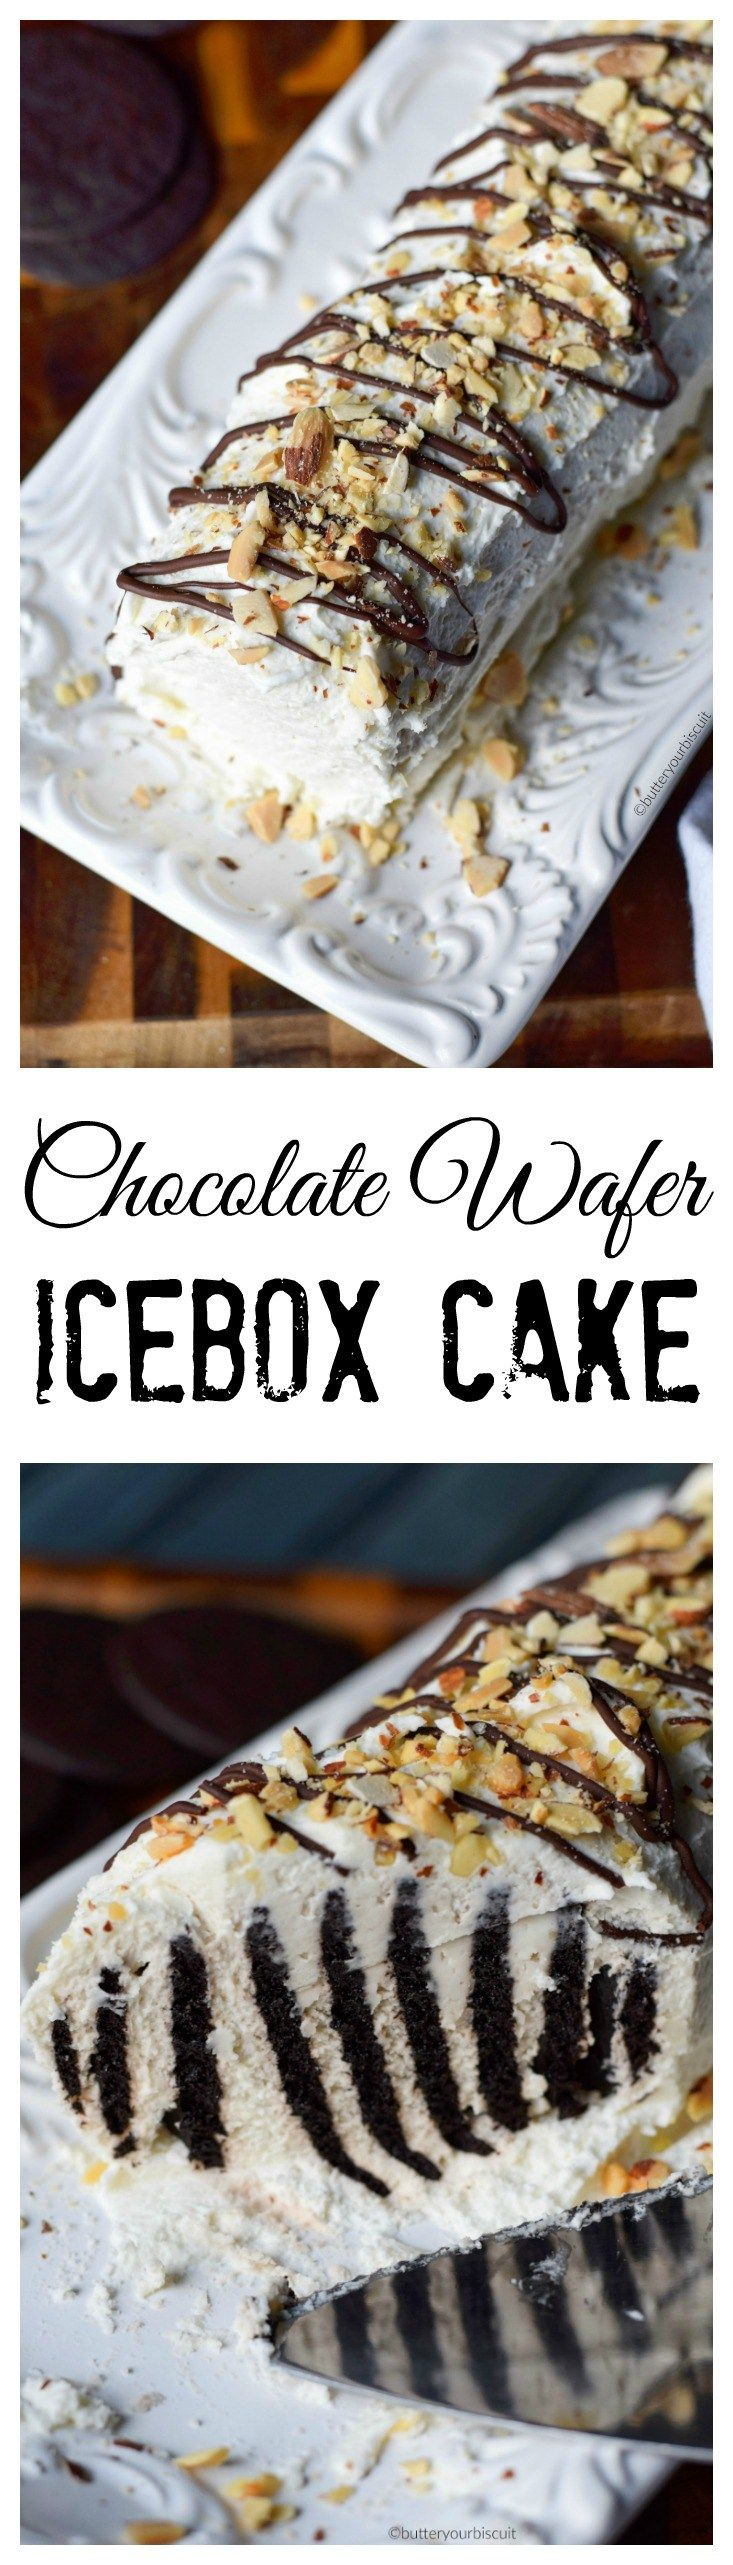 This chocolate wafer icebox cake recipe is a delicious combination of cookies and whipped cream.